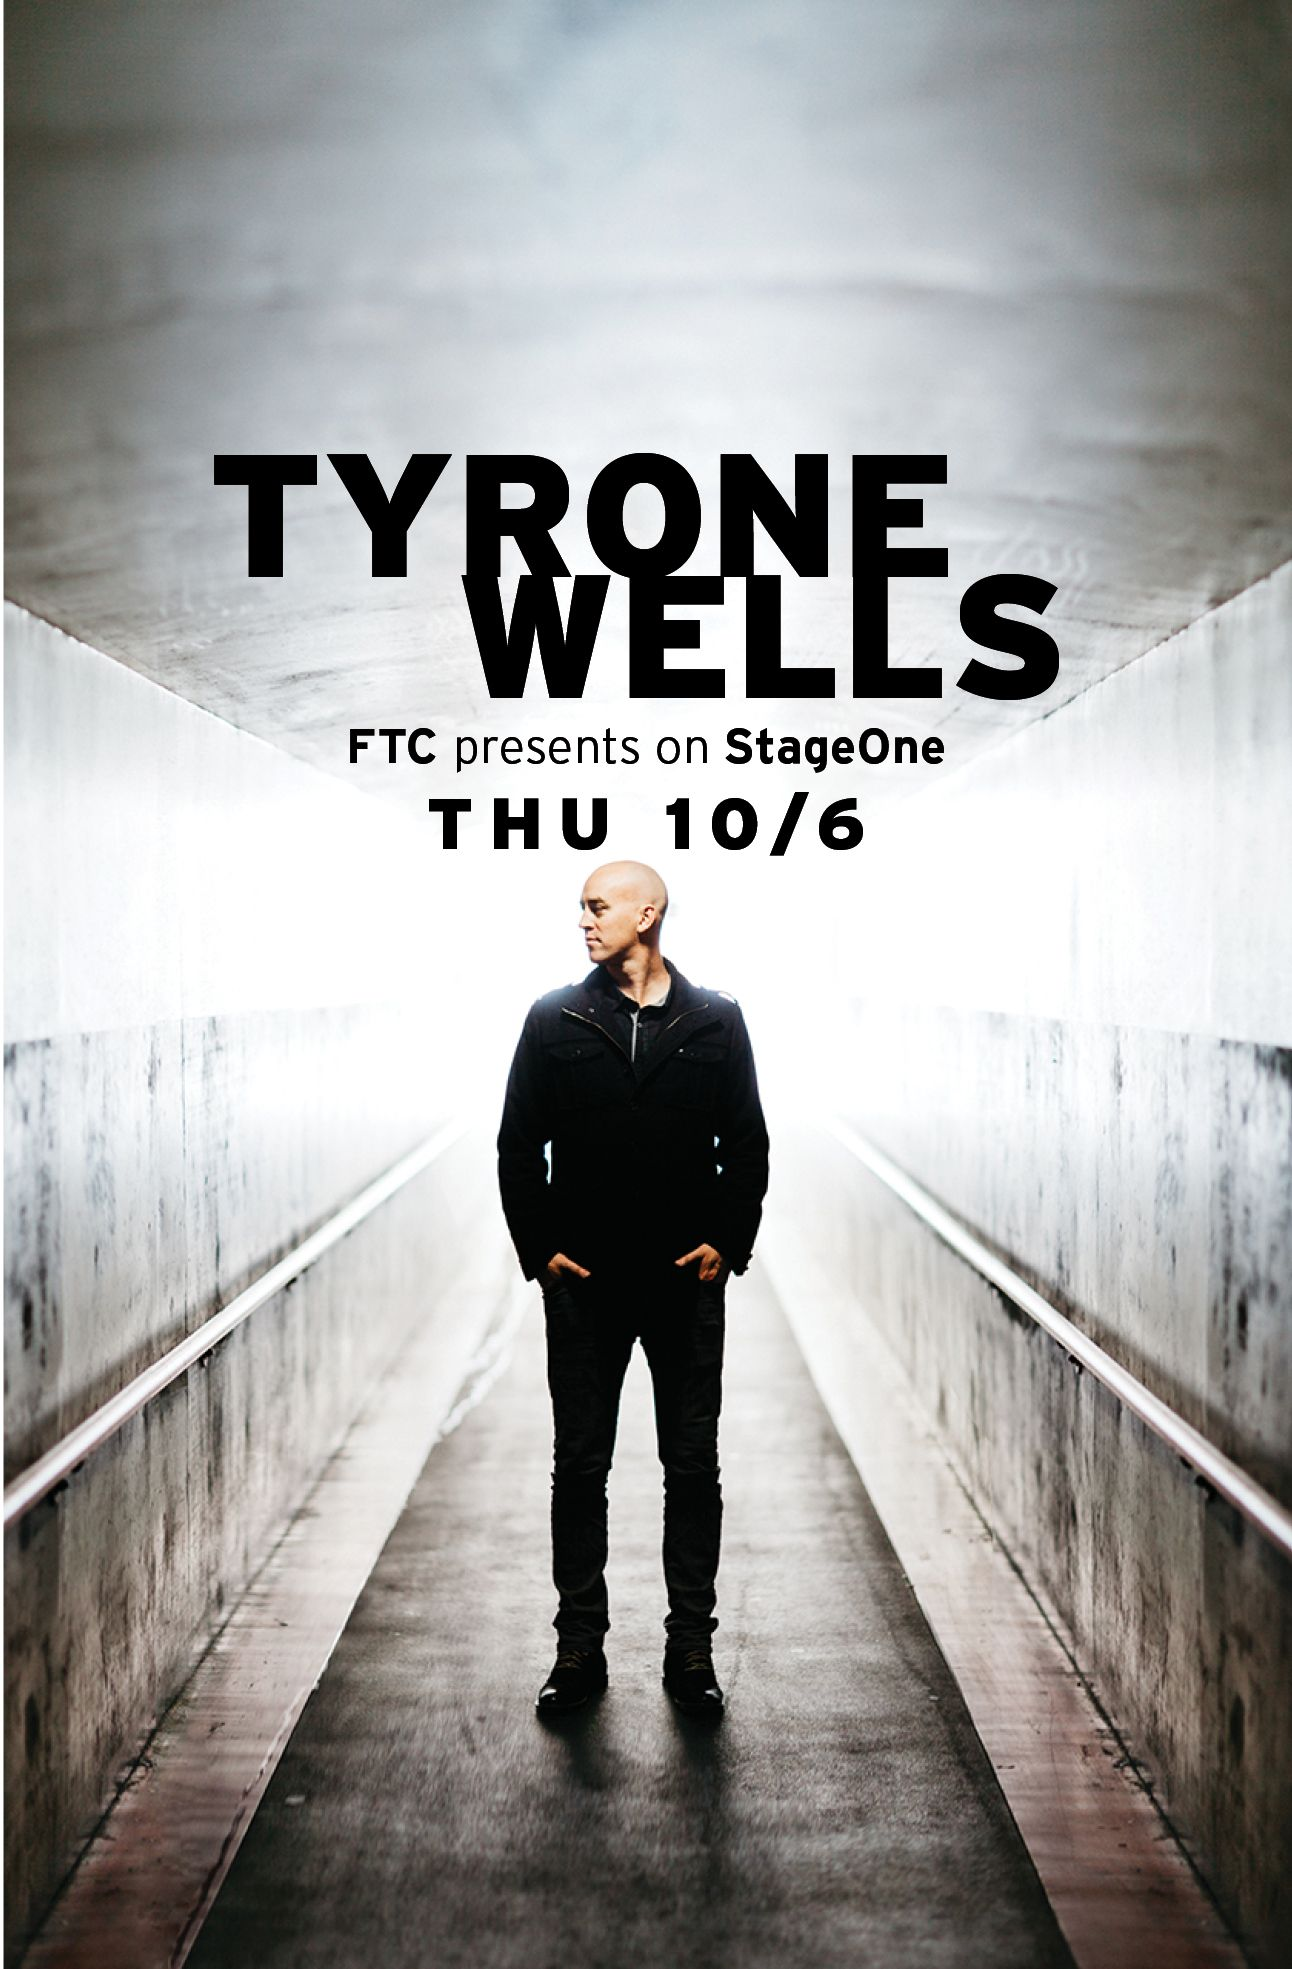 The sultry singer-songwriter Tyrone Wells at StageOne on Thursday October 6!